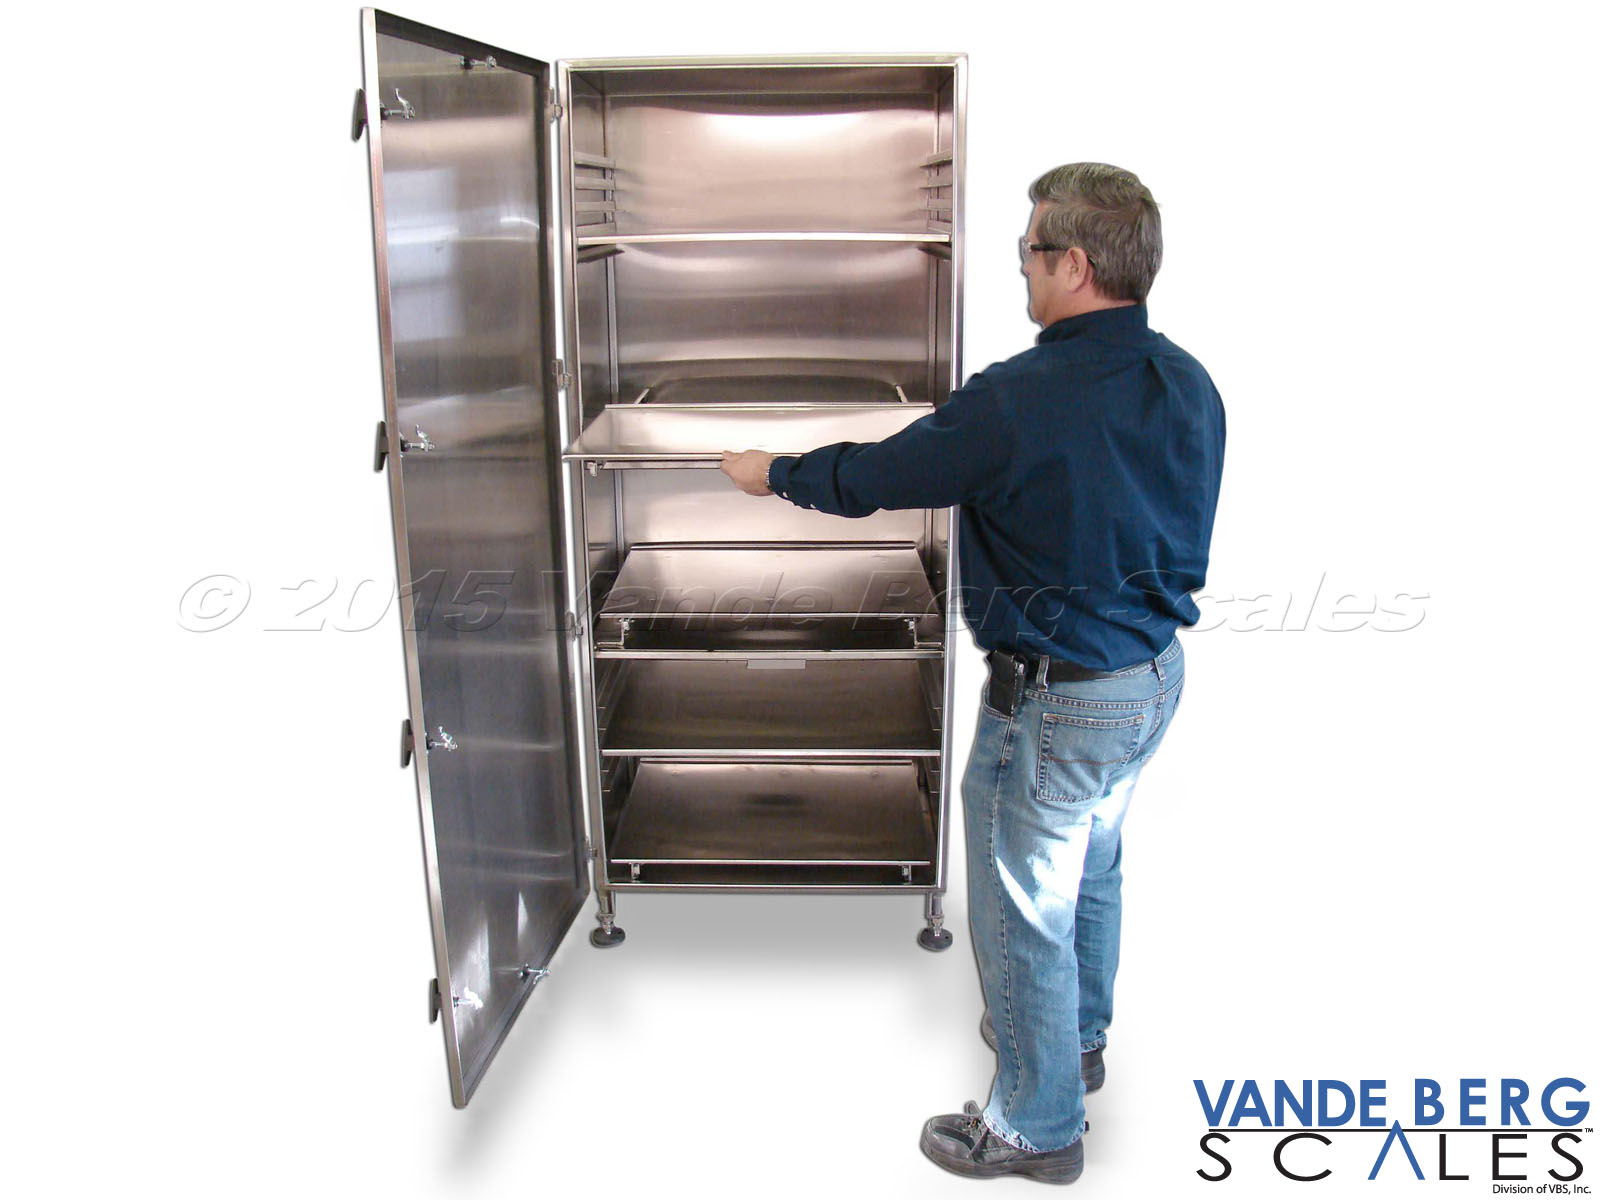 Tall stainless steel cabinet with slide-out shelves for easy component and cable access.